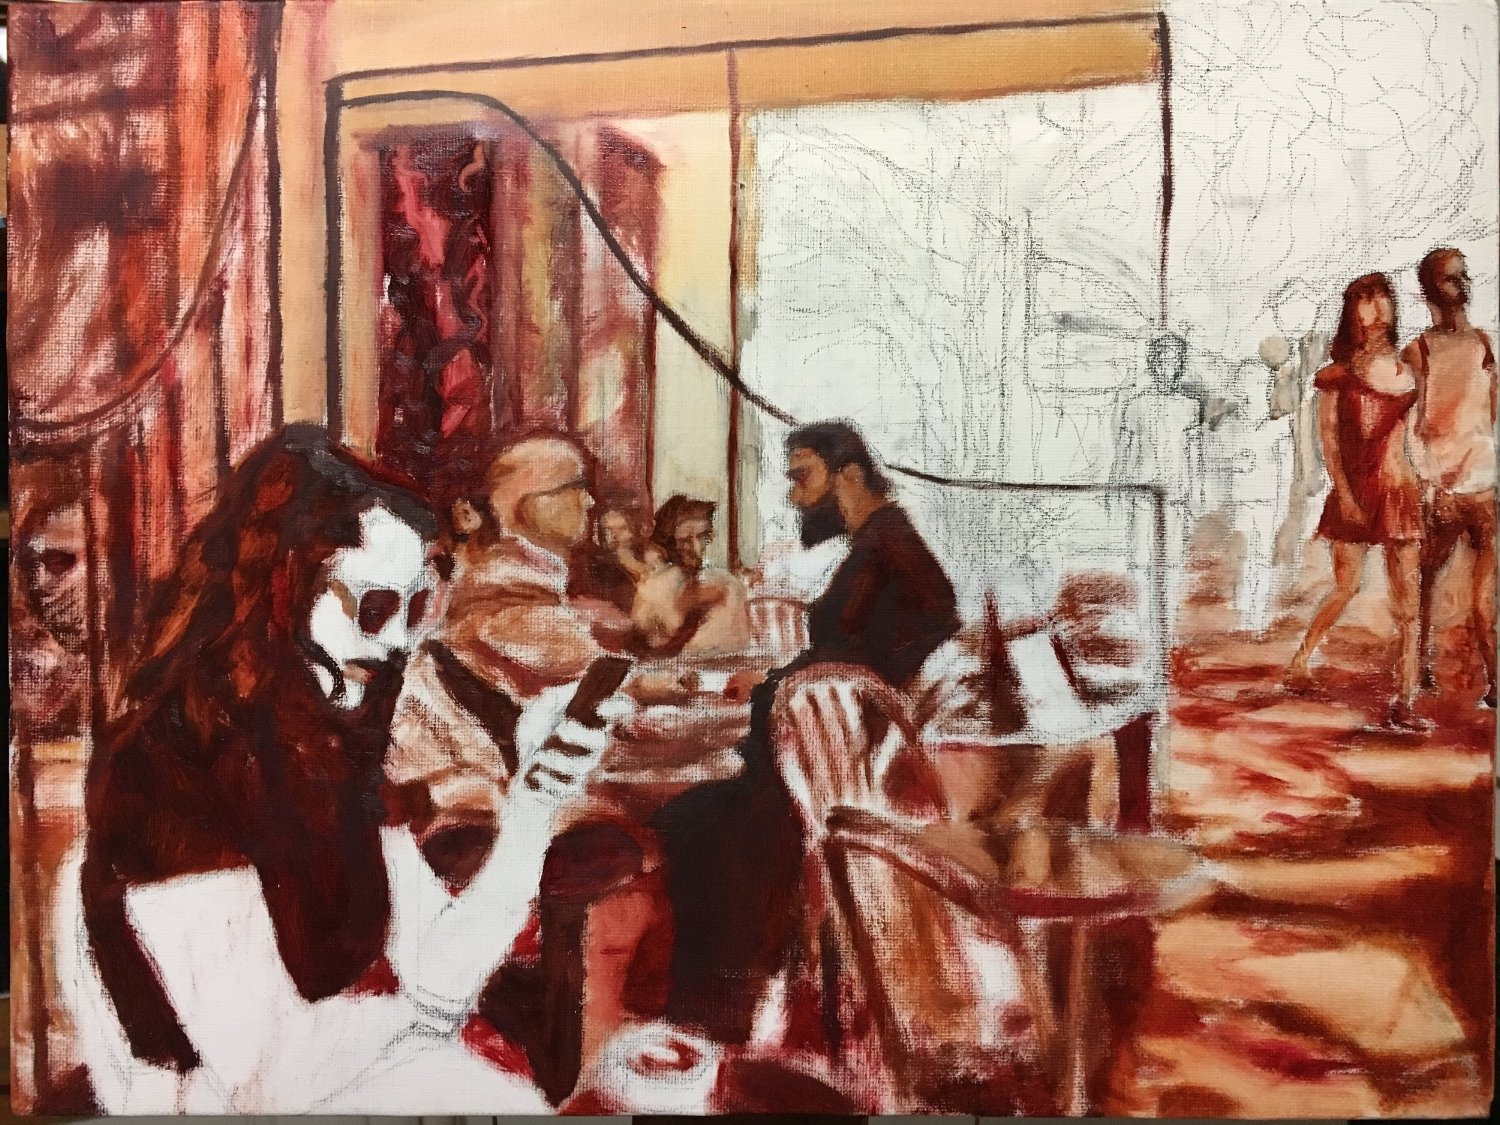 Underpainting as of 13DEC